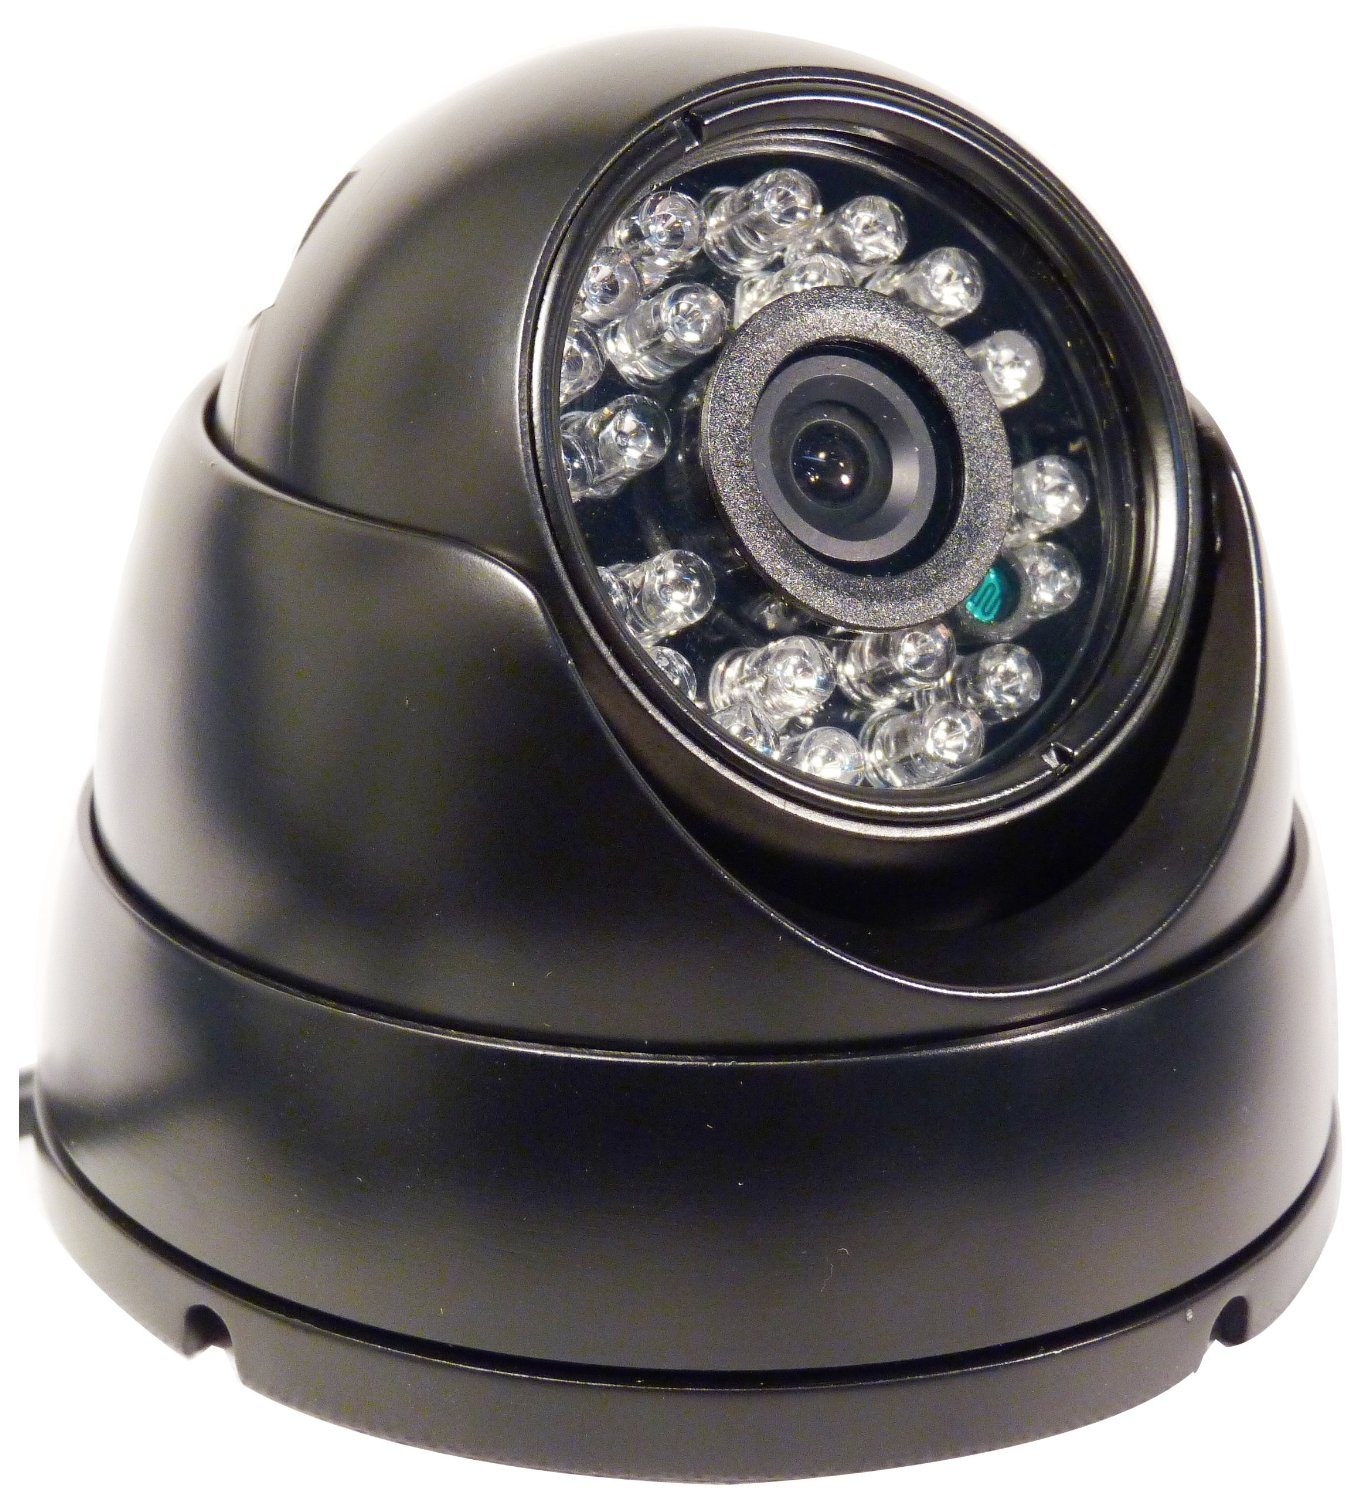 DBS 740G - 700TVL CCTV Dome Security Camera - 1/3'' Sony Super HAD CCD II